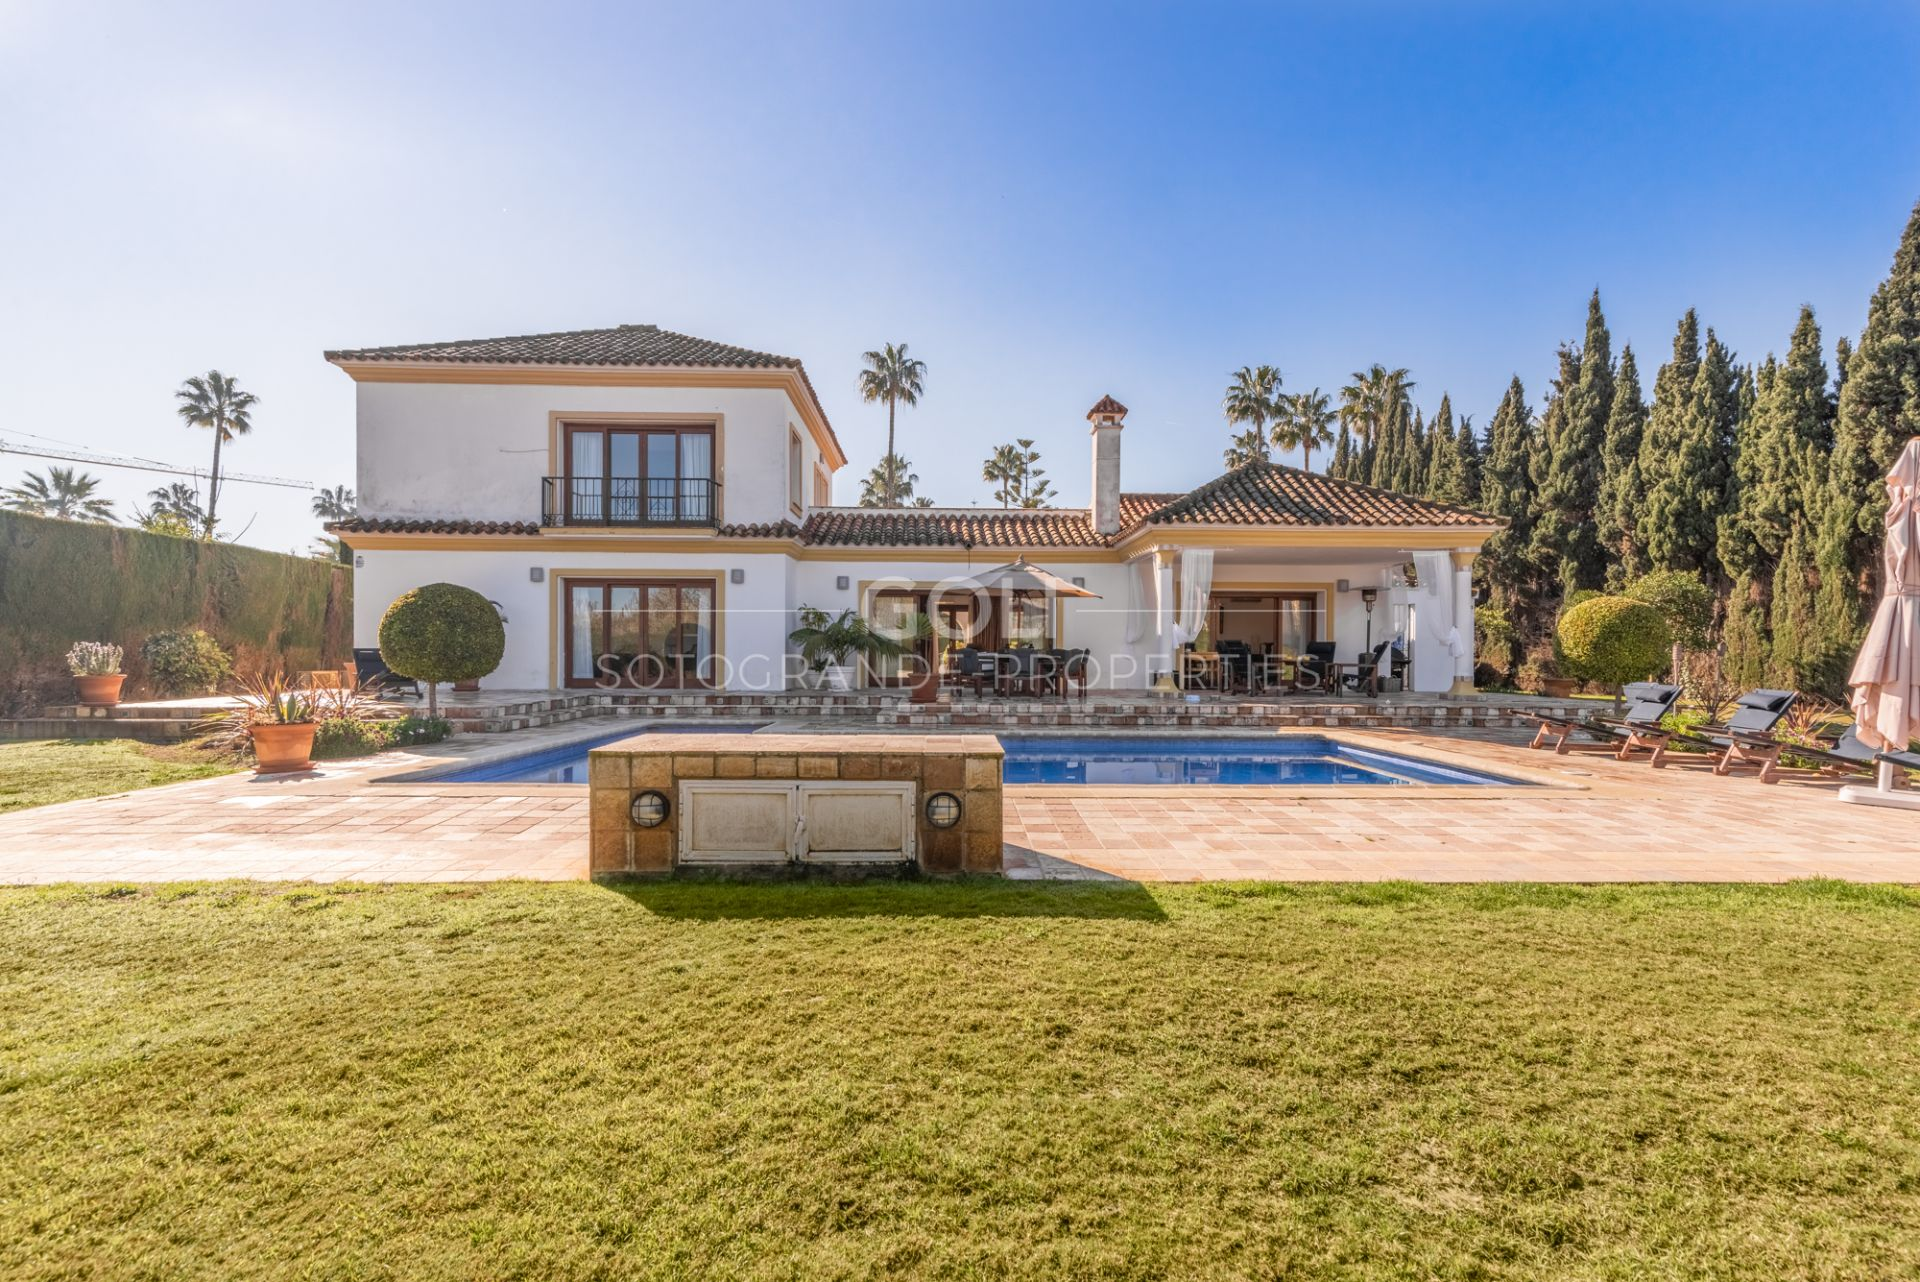 Villa for sale in Sotogrande Costa Central